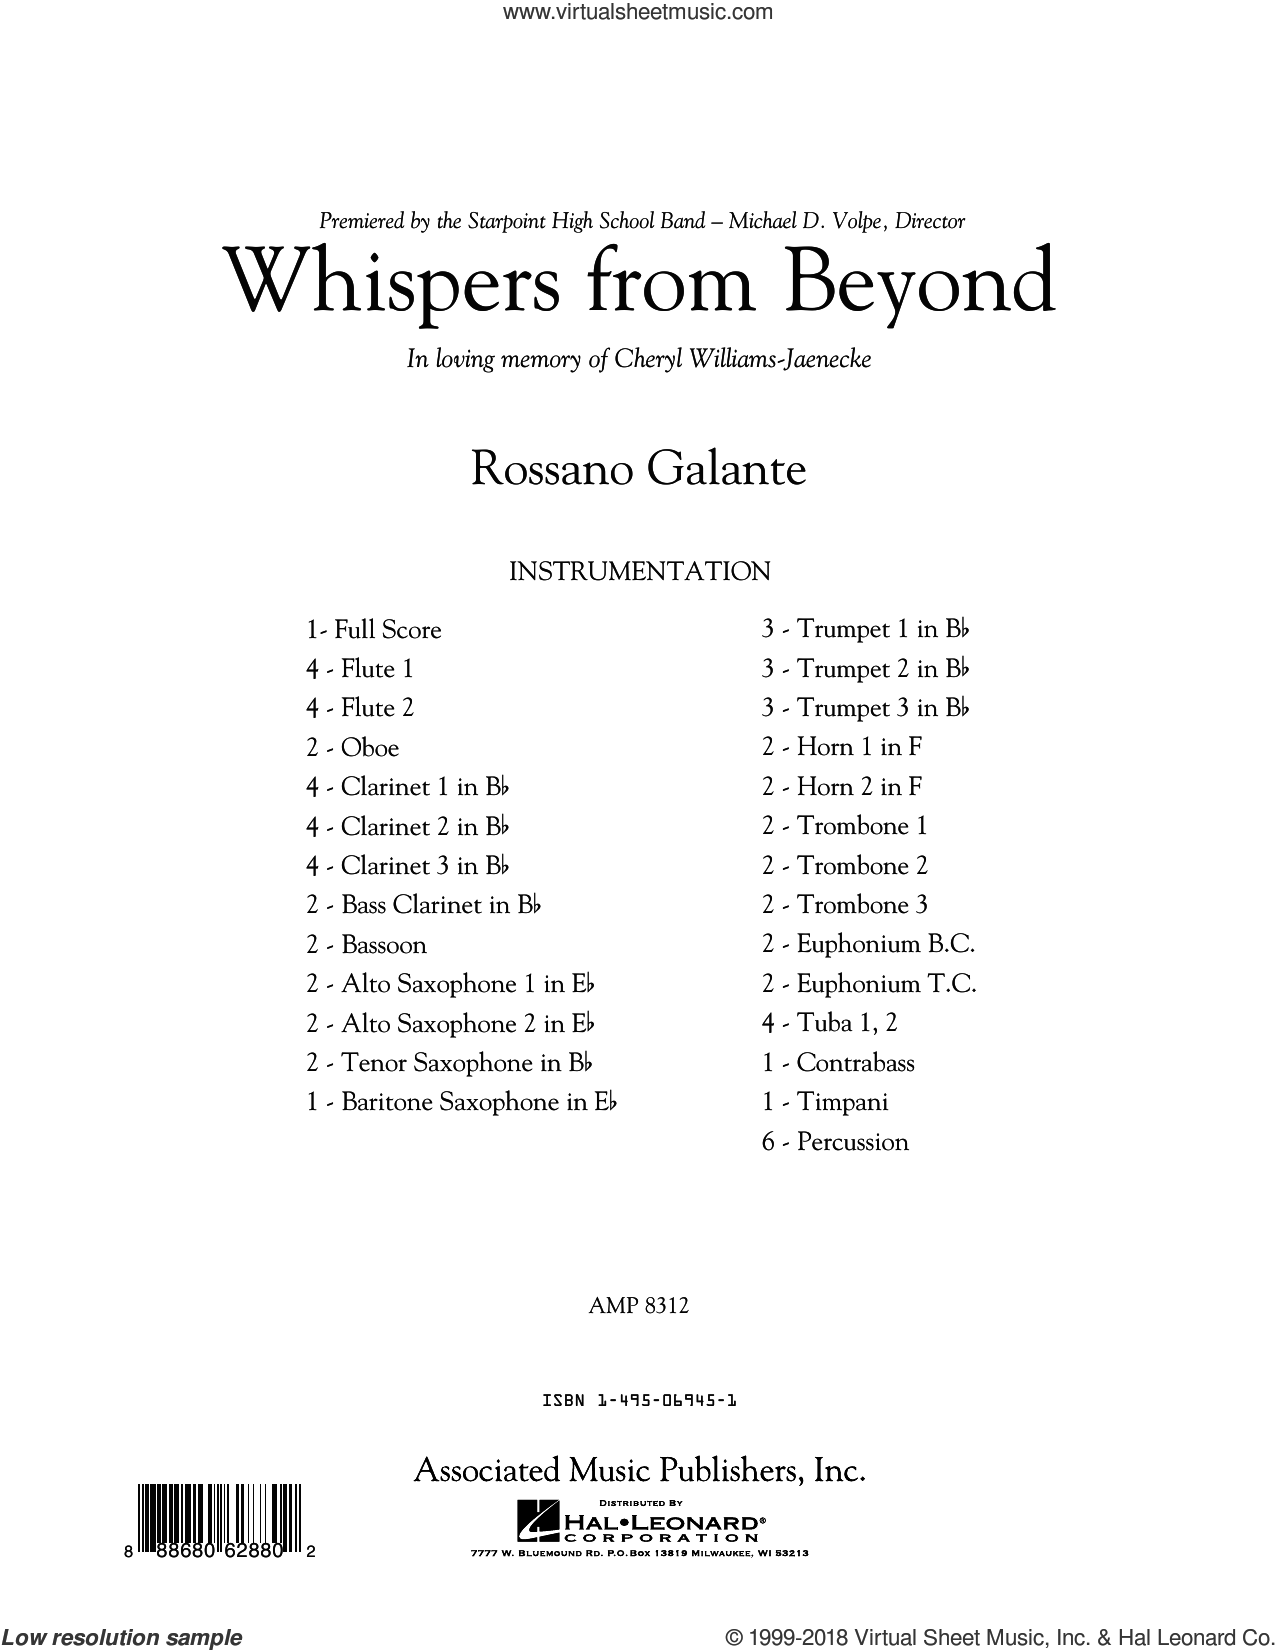 Whispers from Beyond (COMPLETE) sheet music for concert band by Rossano Galante, classical score, intermediate skill level